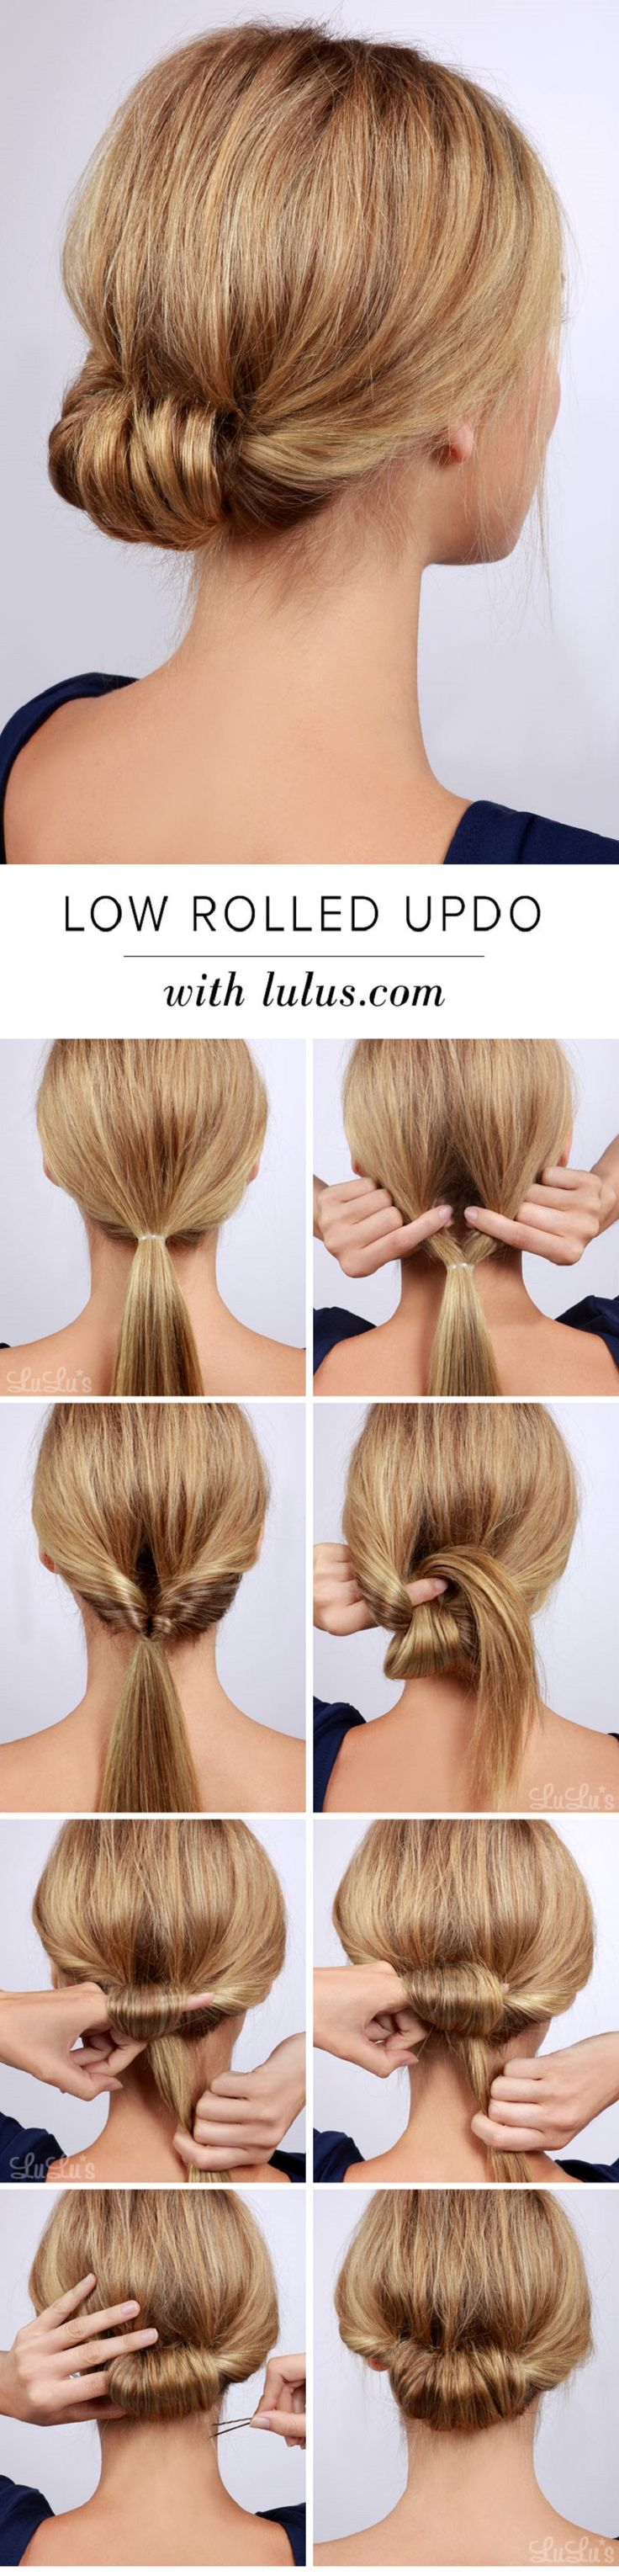 Low Rolled Updo Hair Tutorial - 15 Best Beauty Tutorials for Winter 2014-2015…